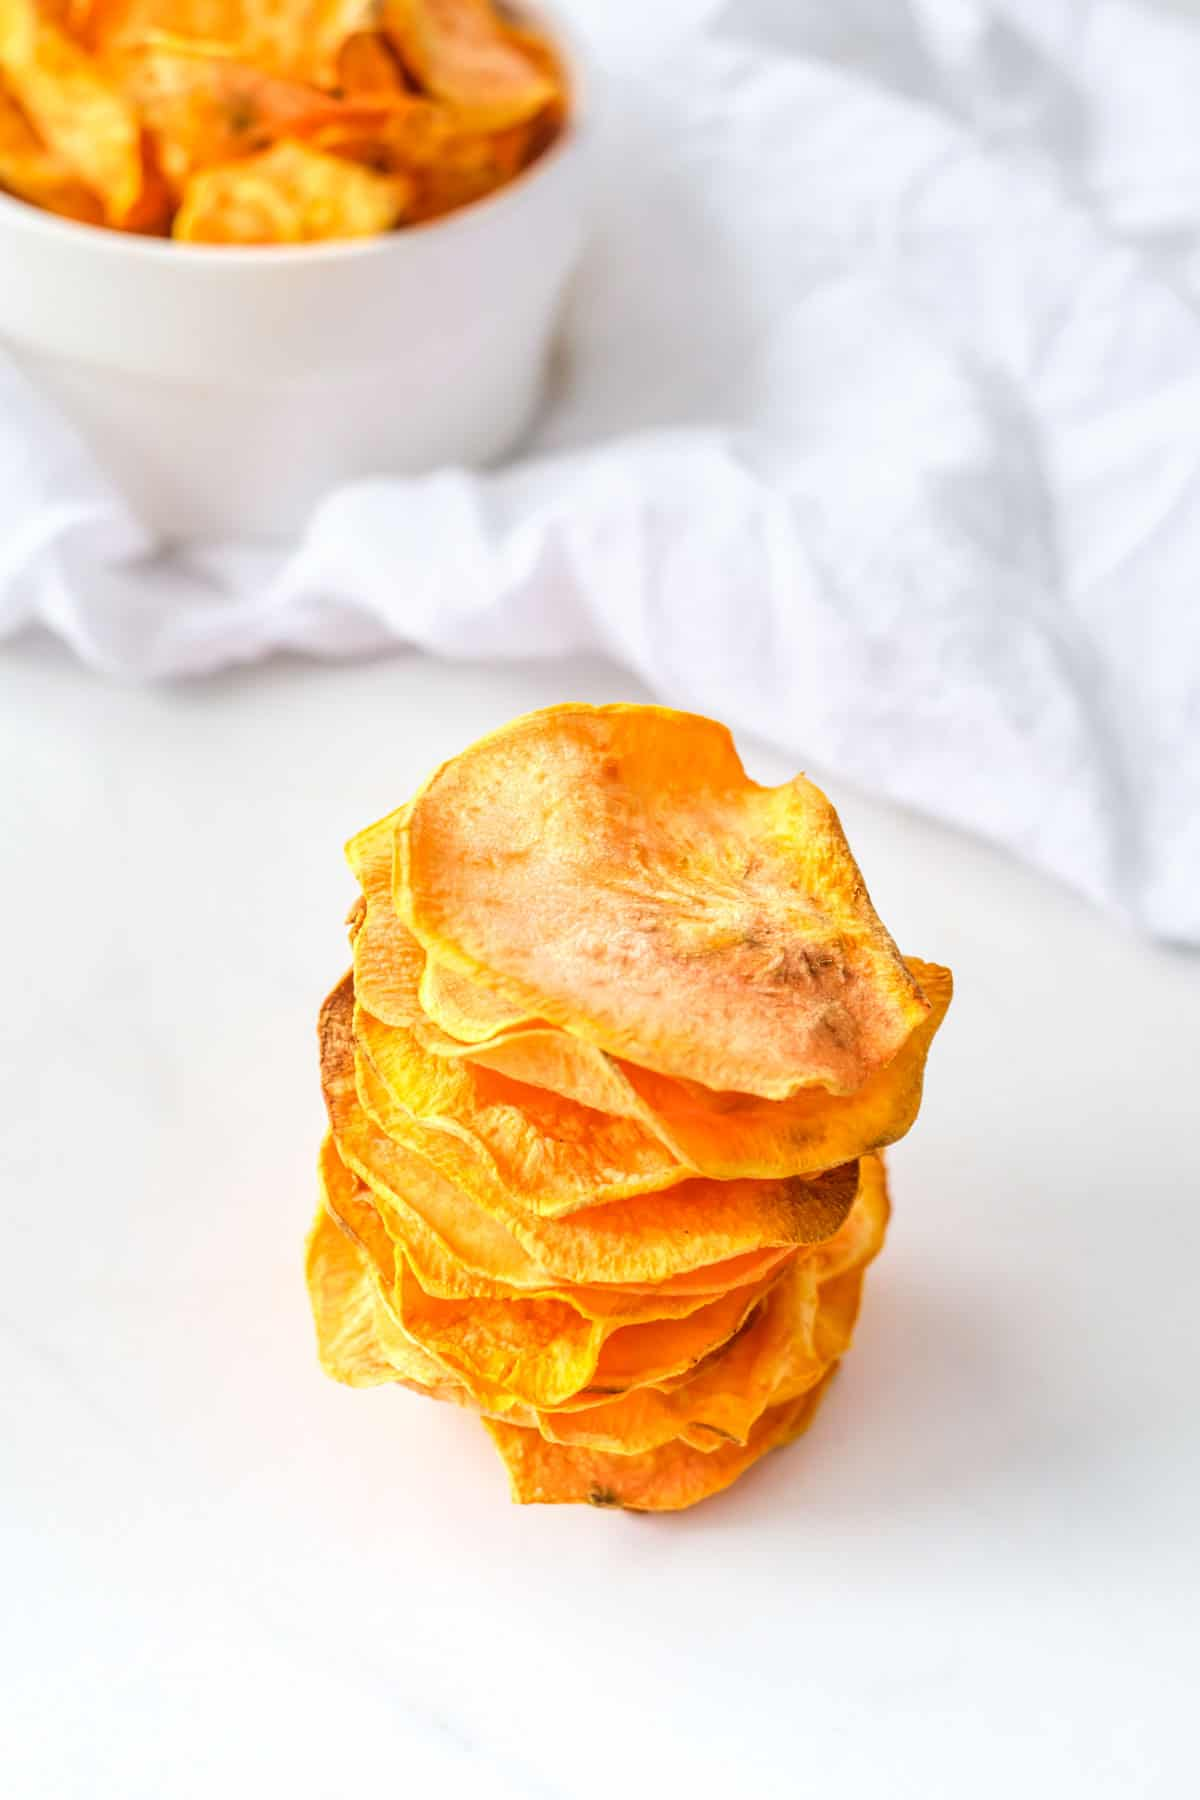 the completed air fryer sweet potato chips served in a white ceramic bowl